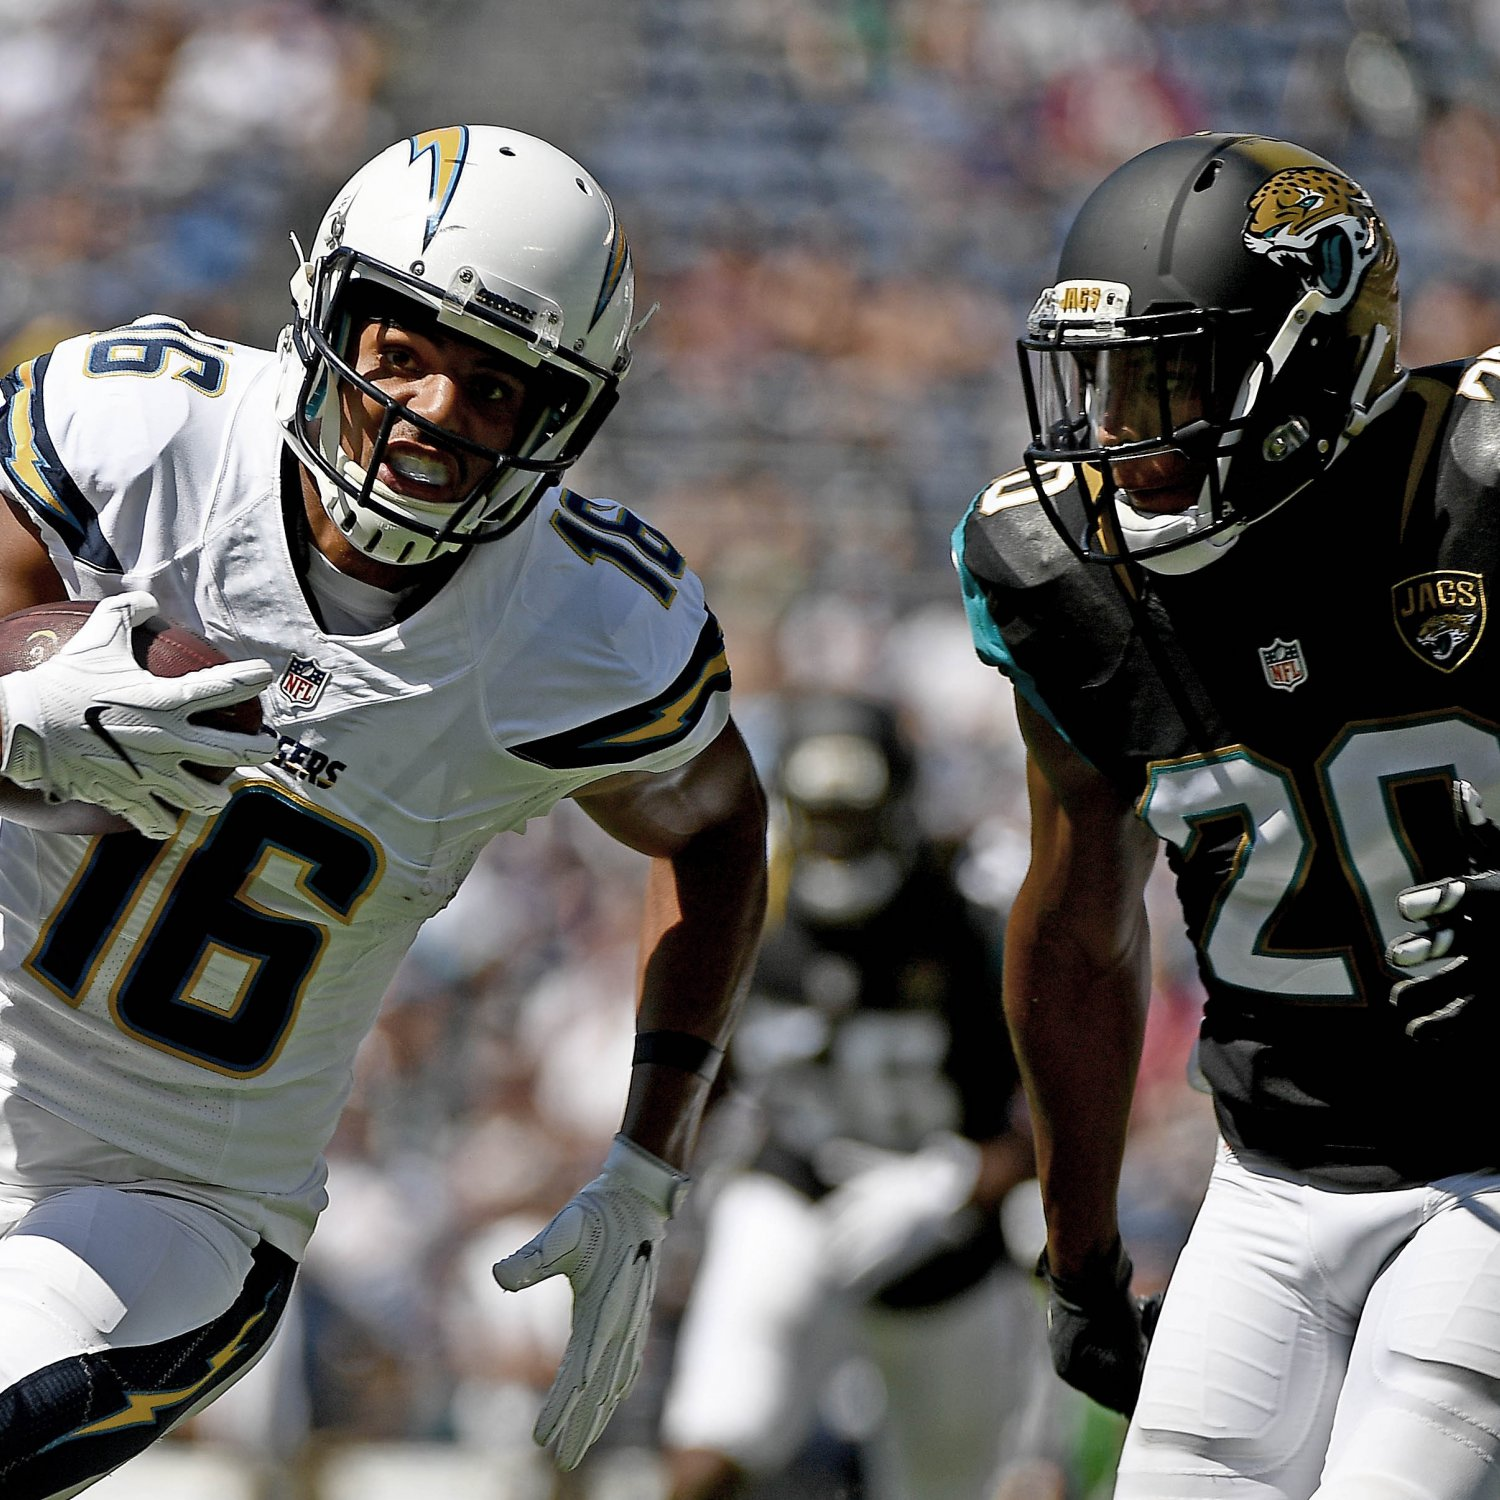 San Diego Chargers Fantasy Football Names: Week 3 Waiver Wire: Fozzy Whittaker, Tyrell Williams